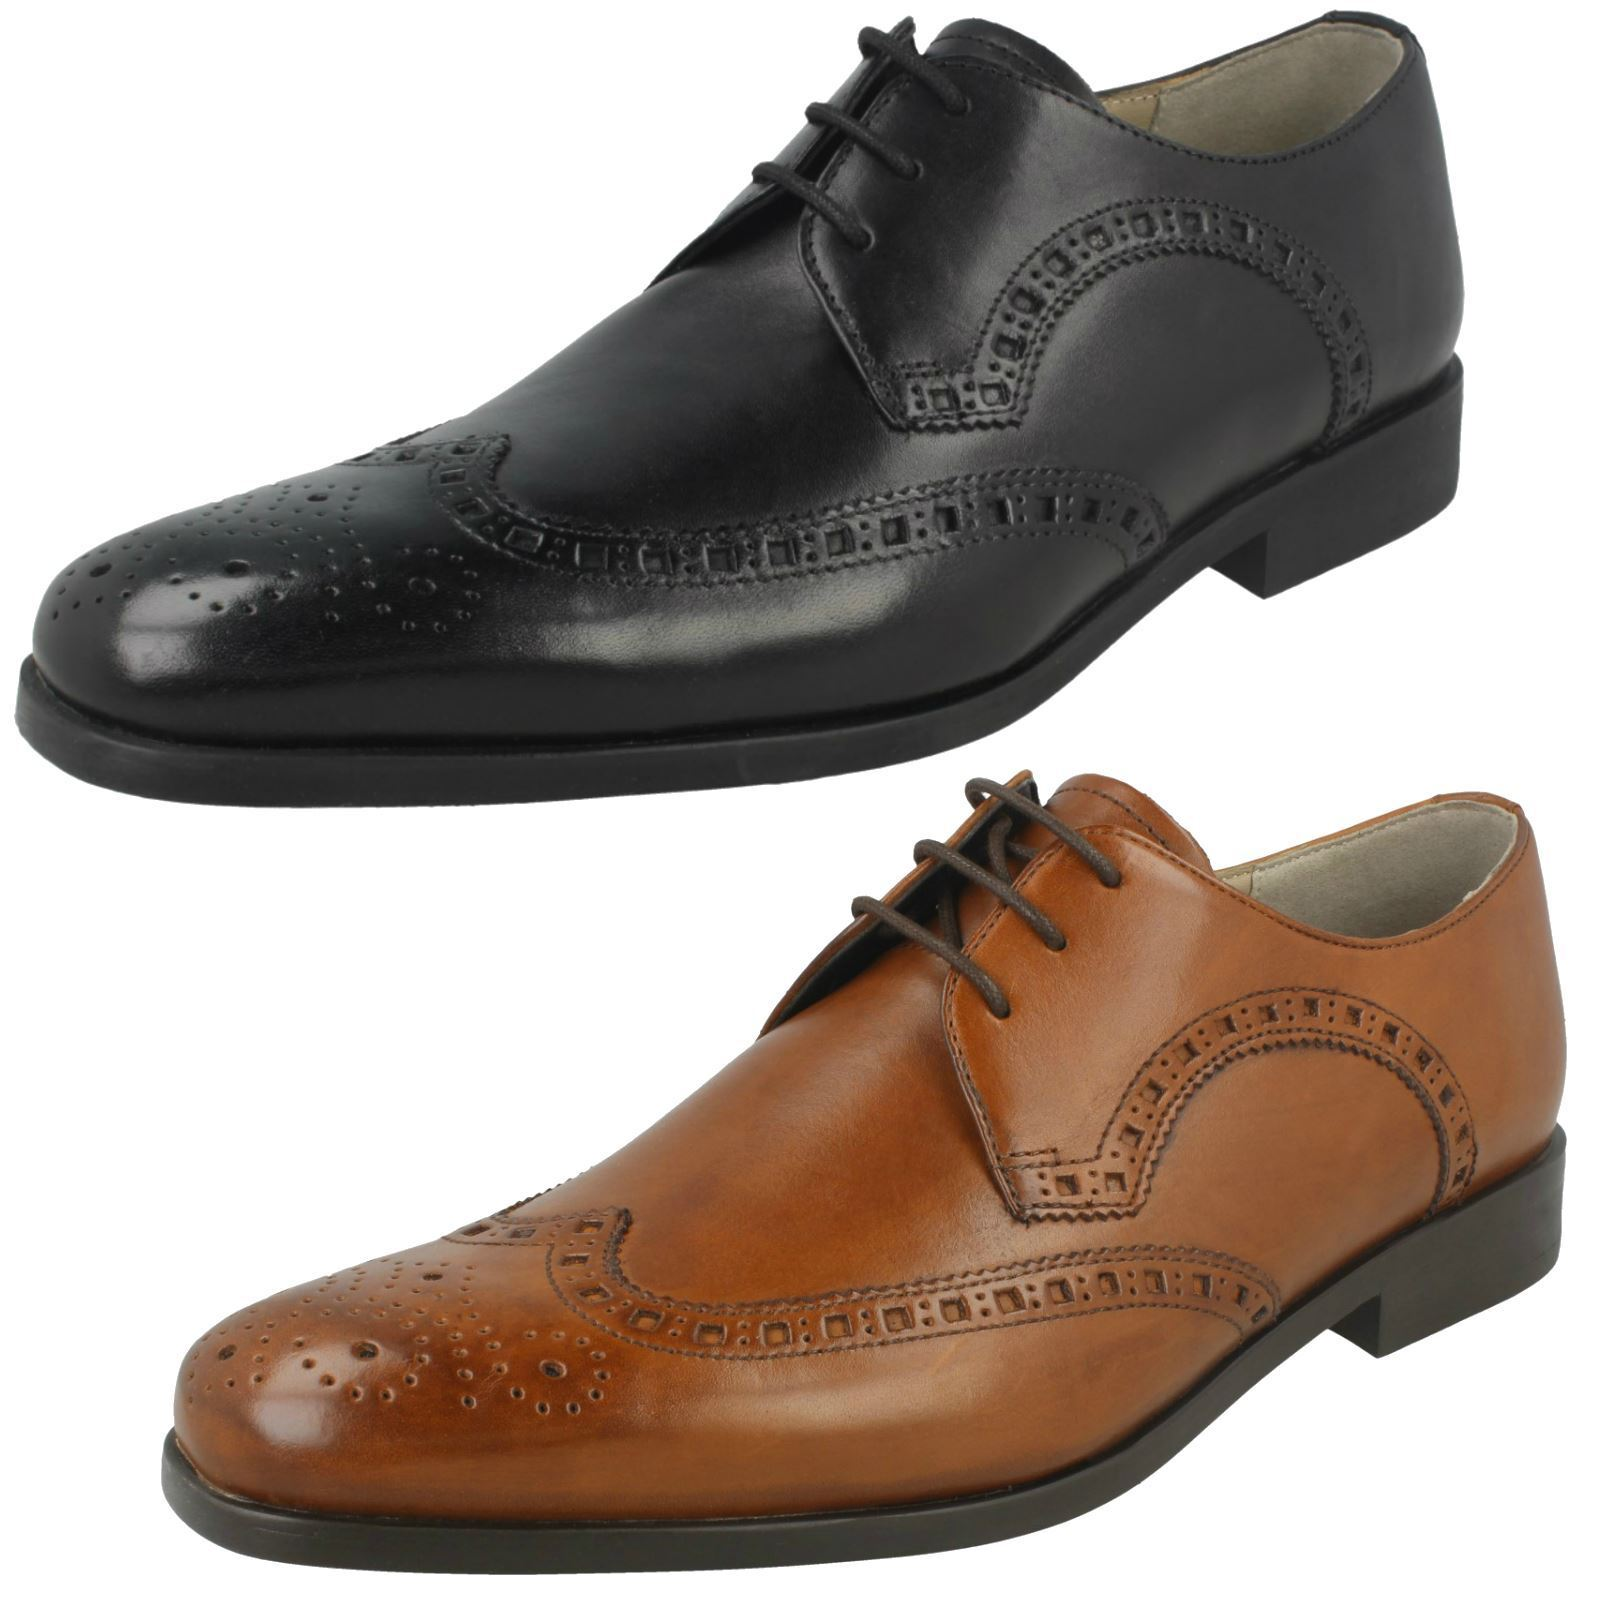 Homme Clarks Formelle Chaussures  amieson Limit